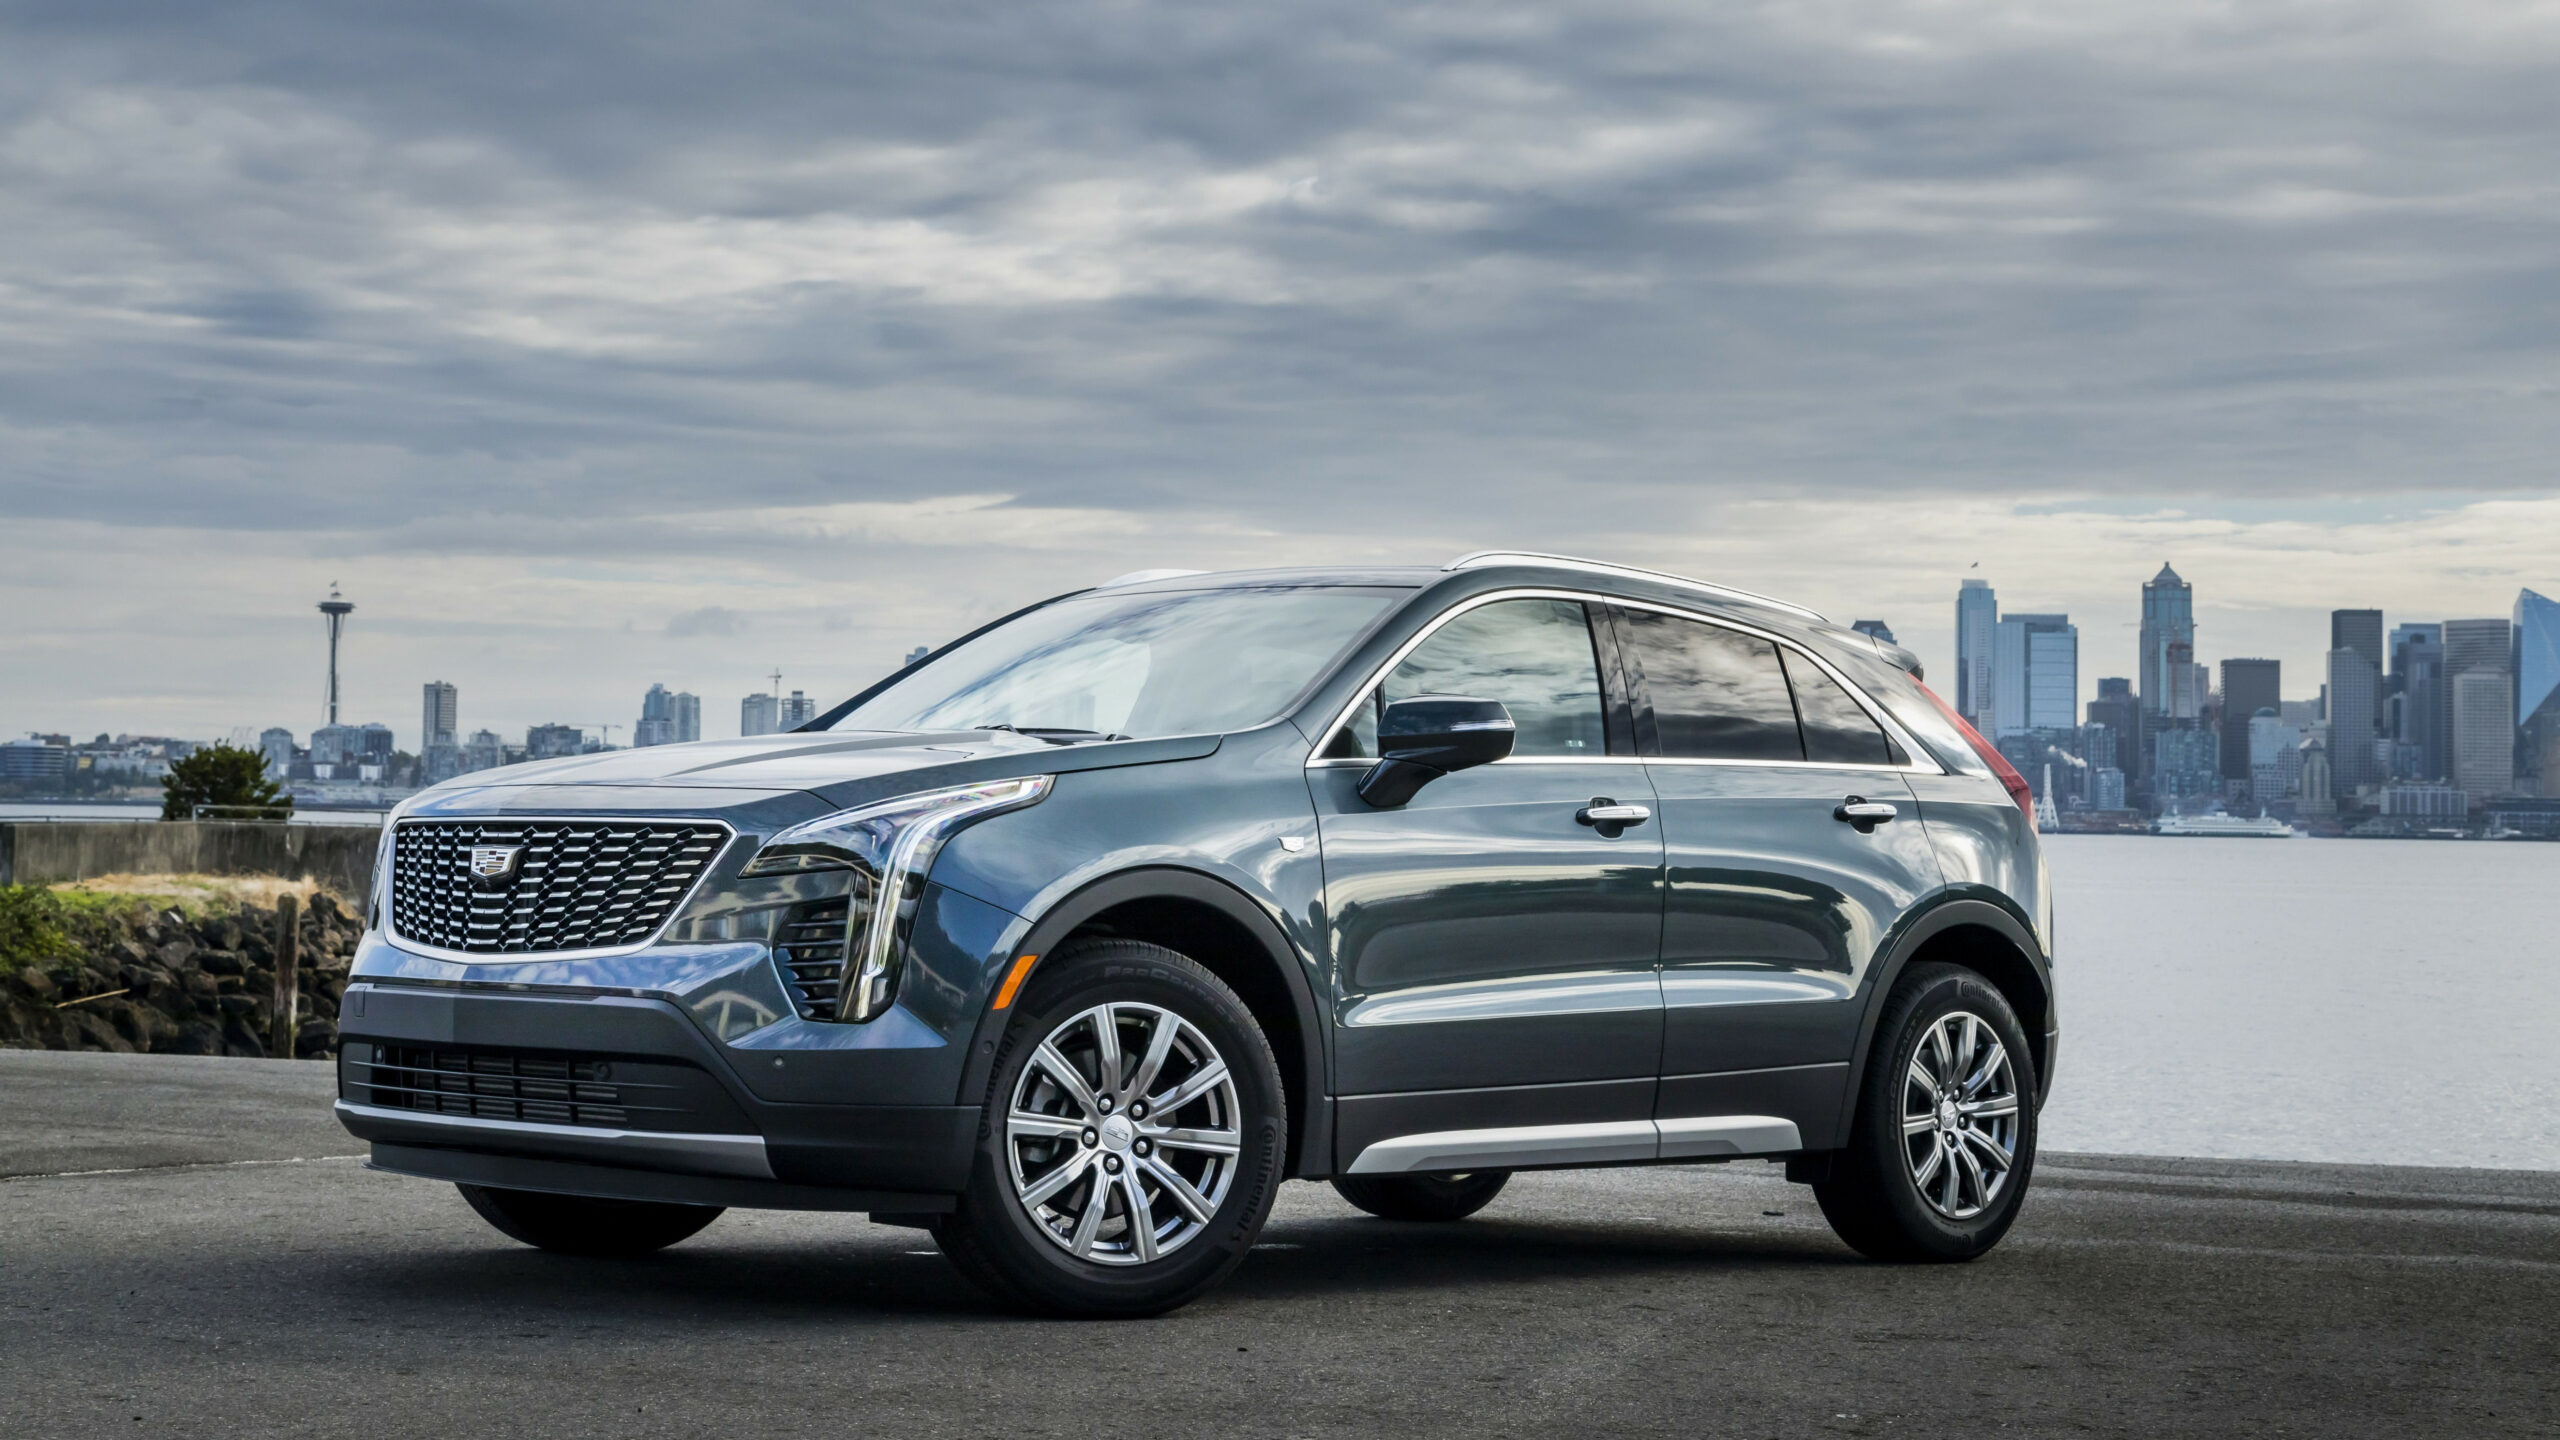 7 cadillac navigation system map update First Drive 7*7 ..